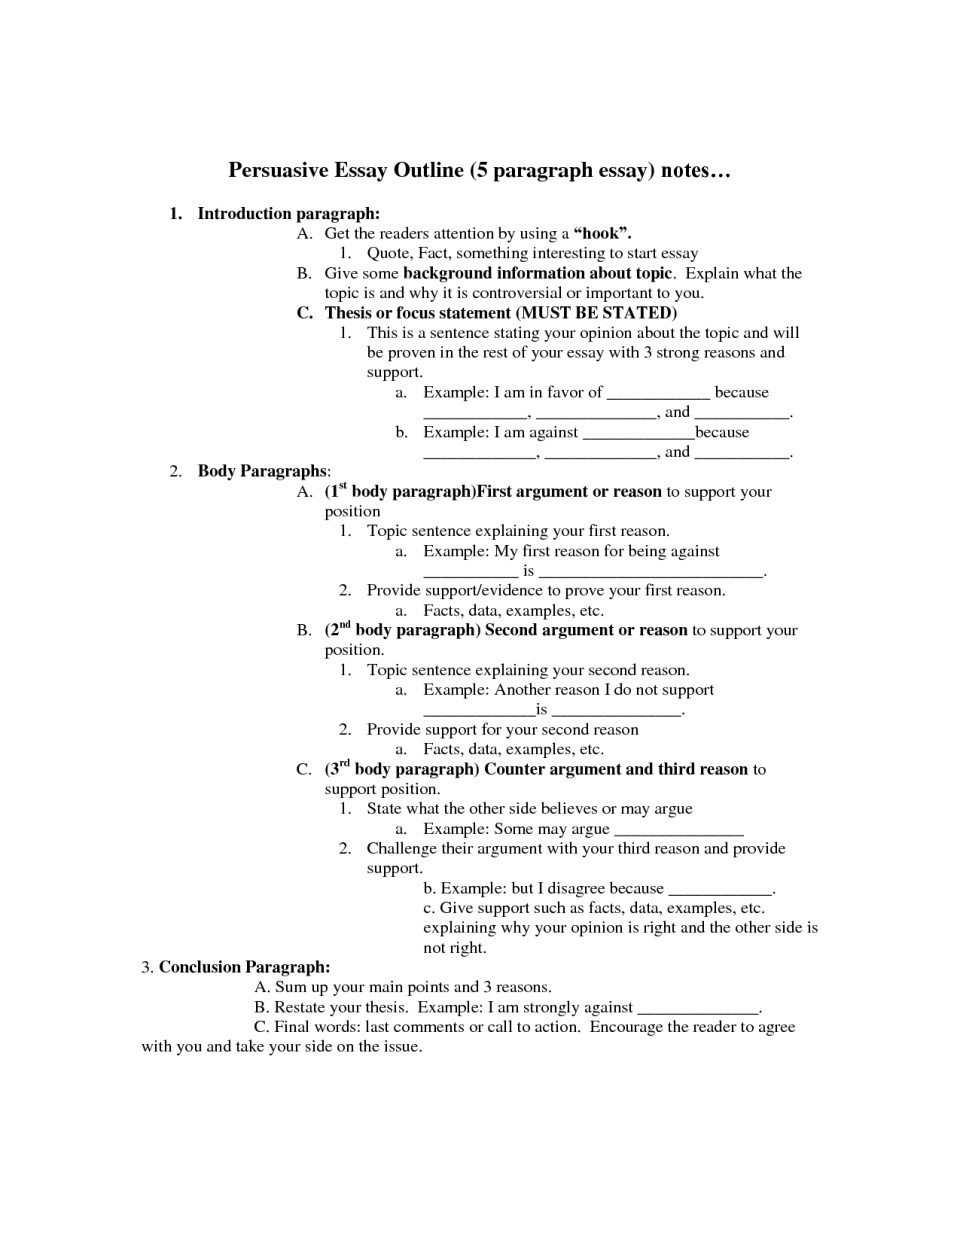 006 Persuasive Essay Outline Unbelievable 5 Paragraph Template Worksheet Pdf 960